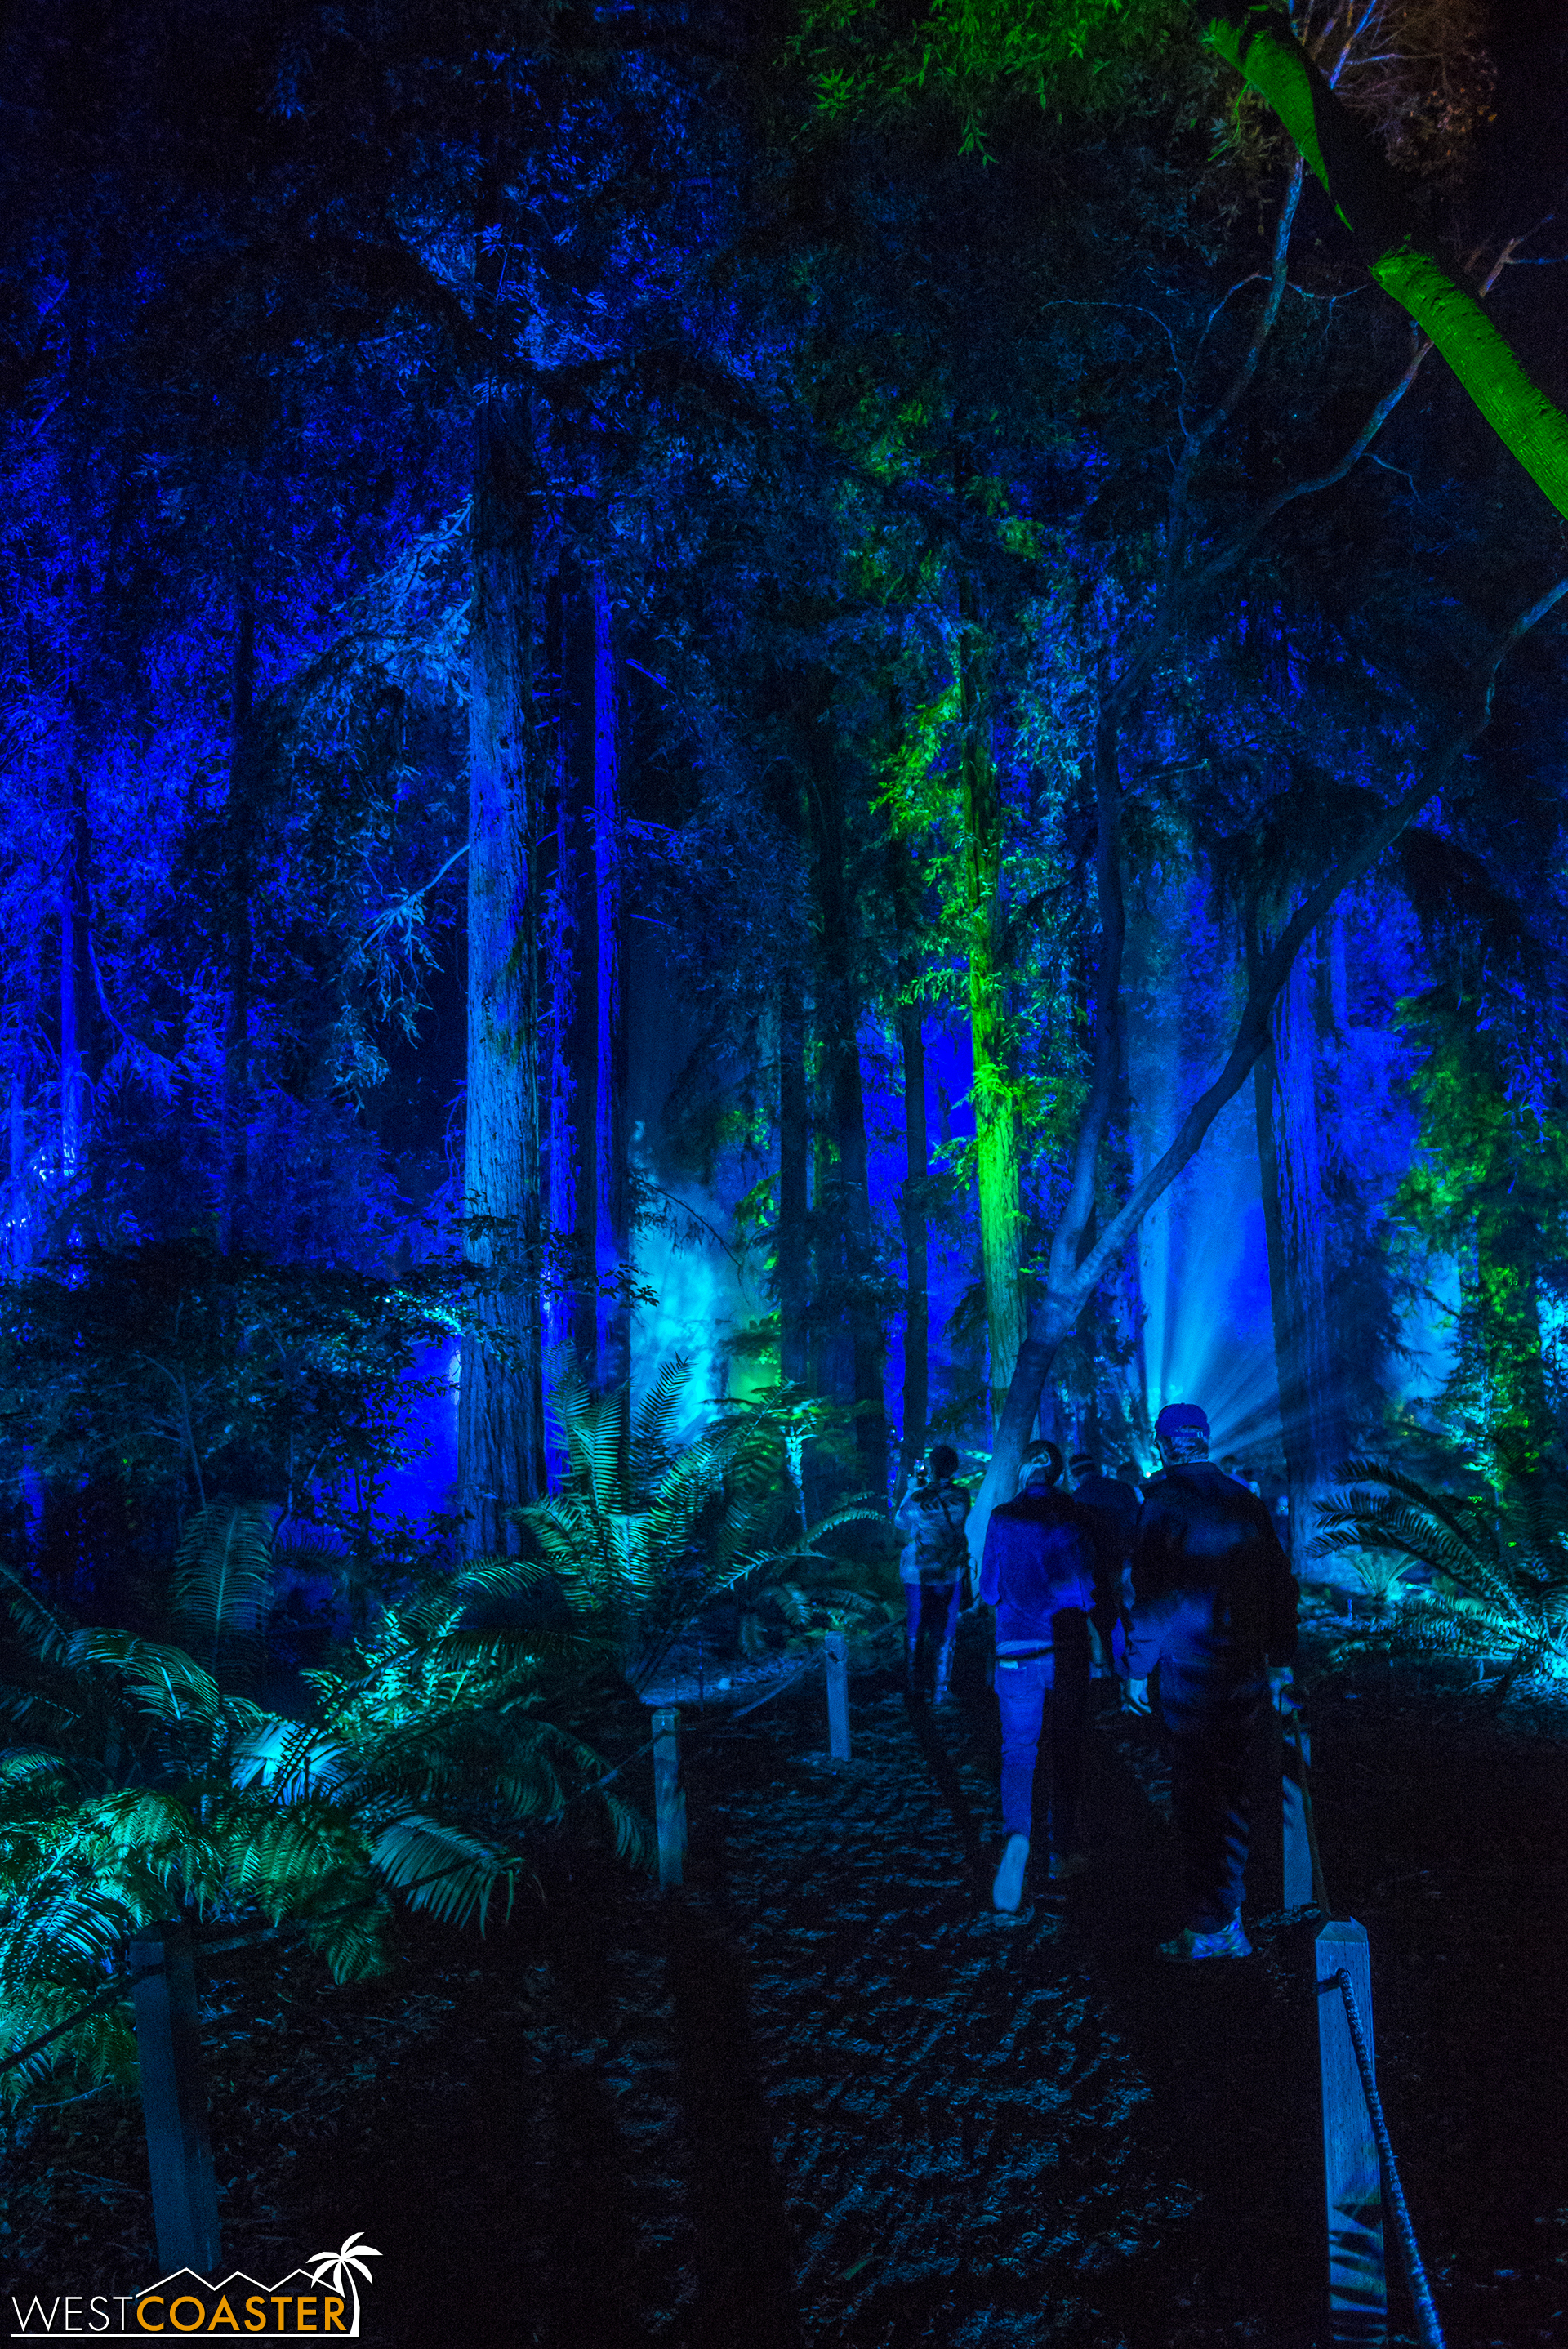 Though this is a real and very old forest, the lighting gives it a theme park ride or movie set feel--if only because the environment feels otherworldly!